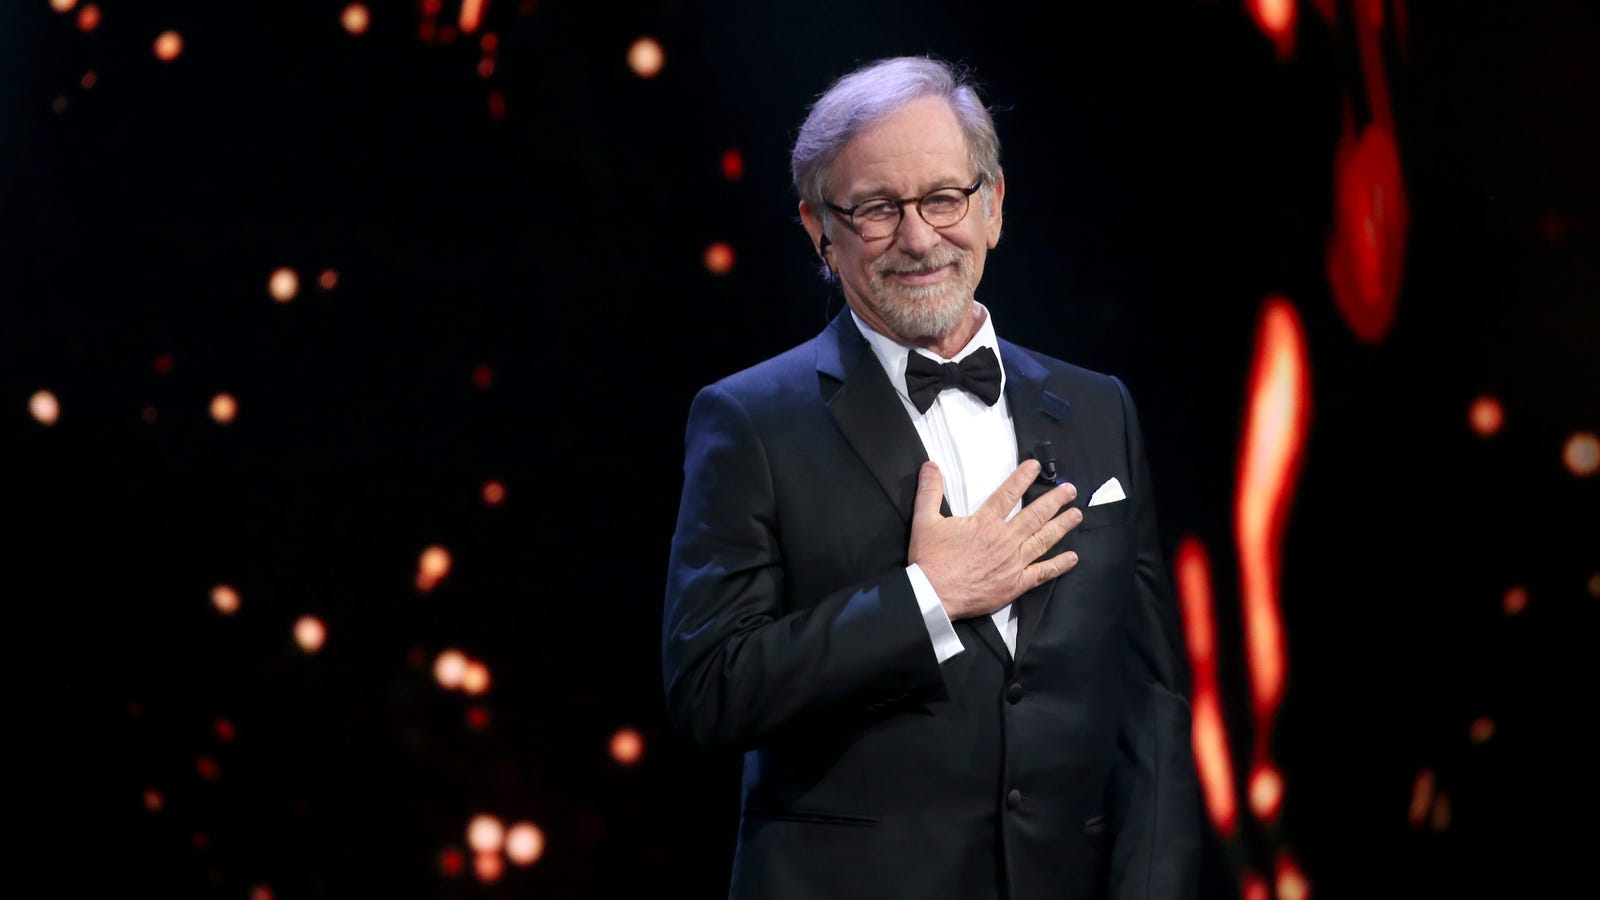 Steven Spielberg thinks streaming movies belong at the Emmys, not the Oscars